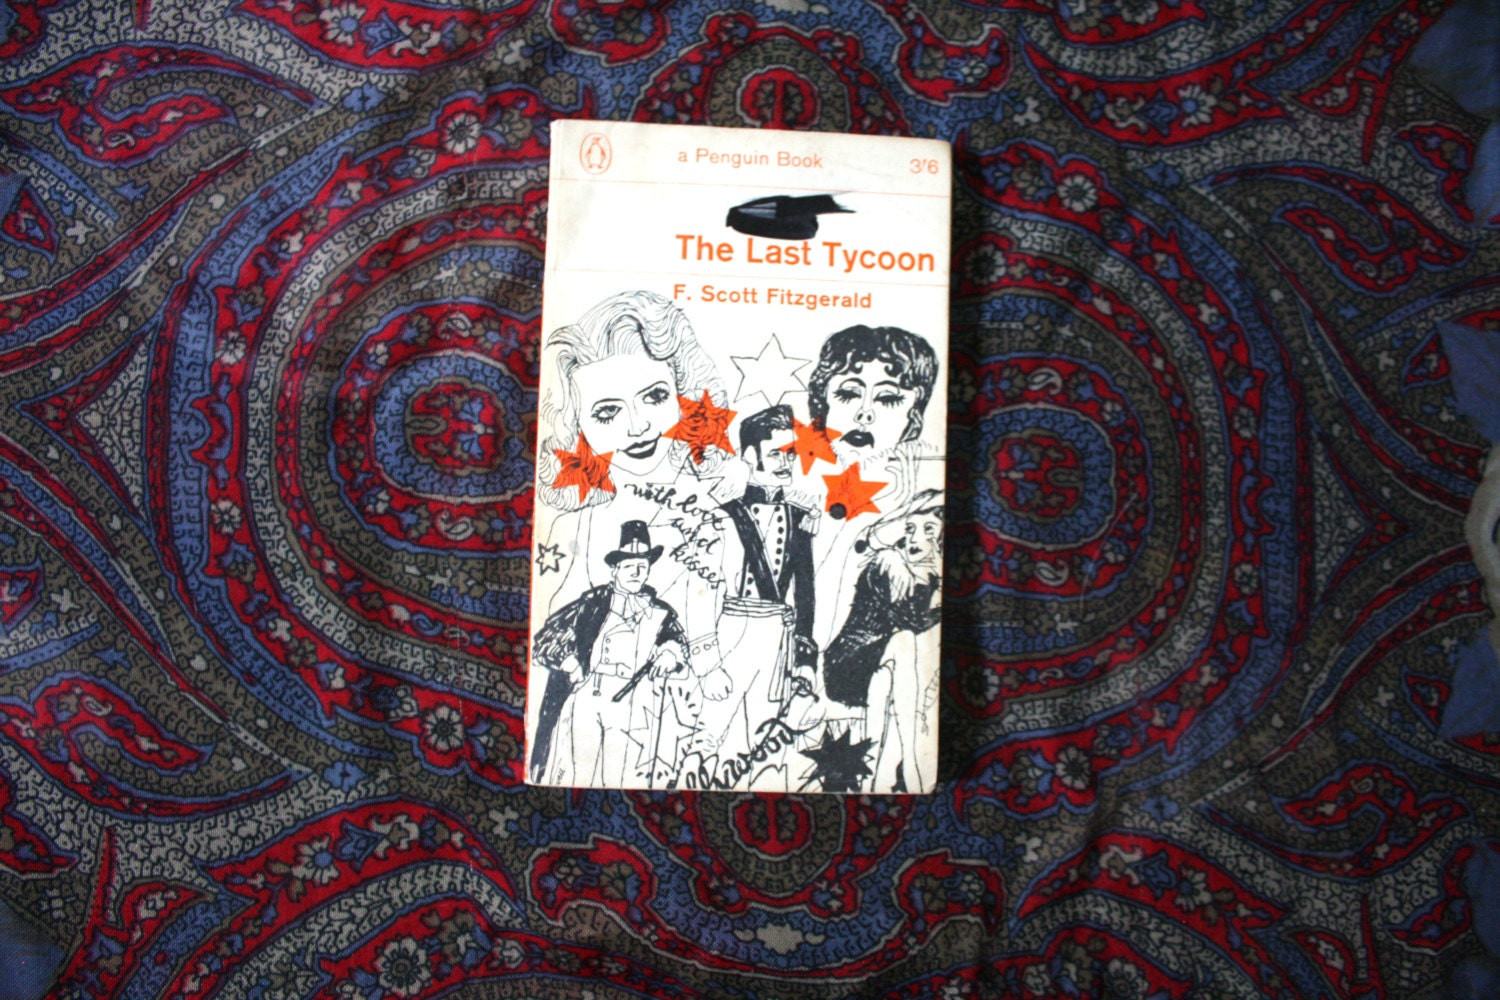 Vintage Penguin Book Cover Postcards : F scott fitzgerald the last tycoon s vintage